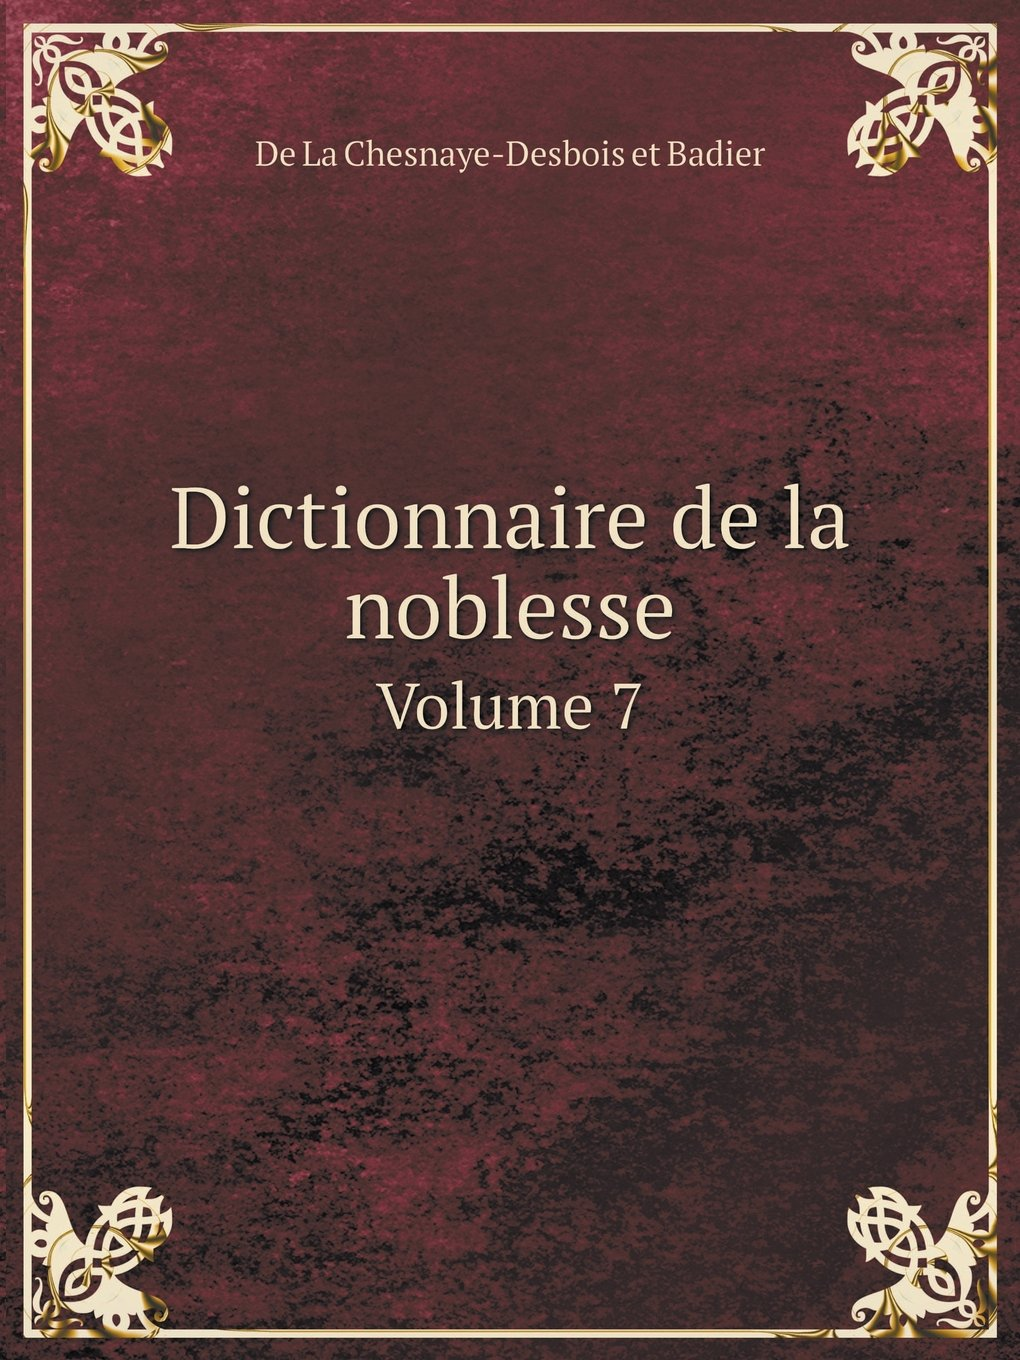 Dictionnaire de la noblesse Volume 7 (French Edition) pdf epub